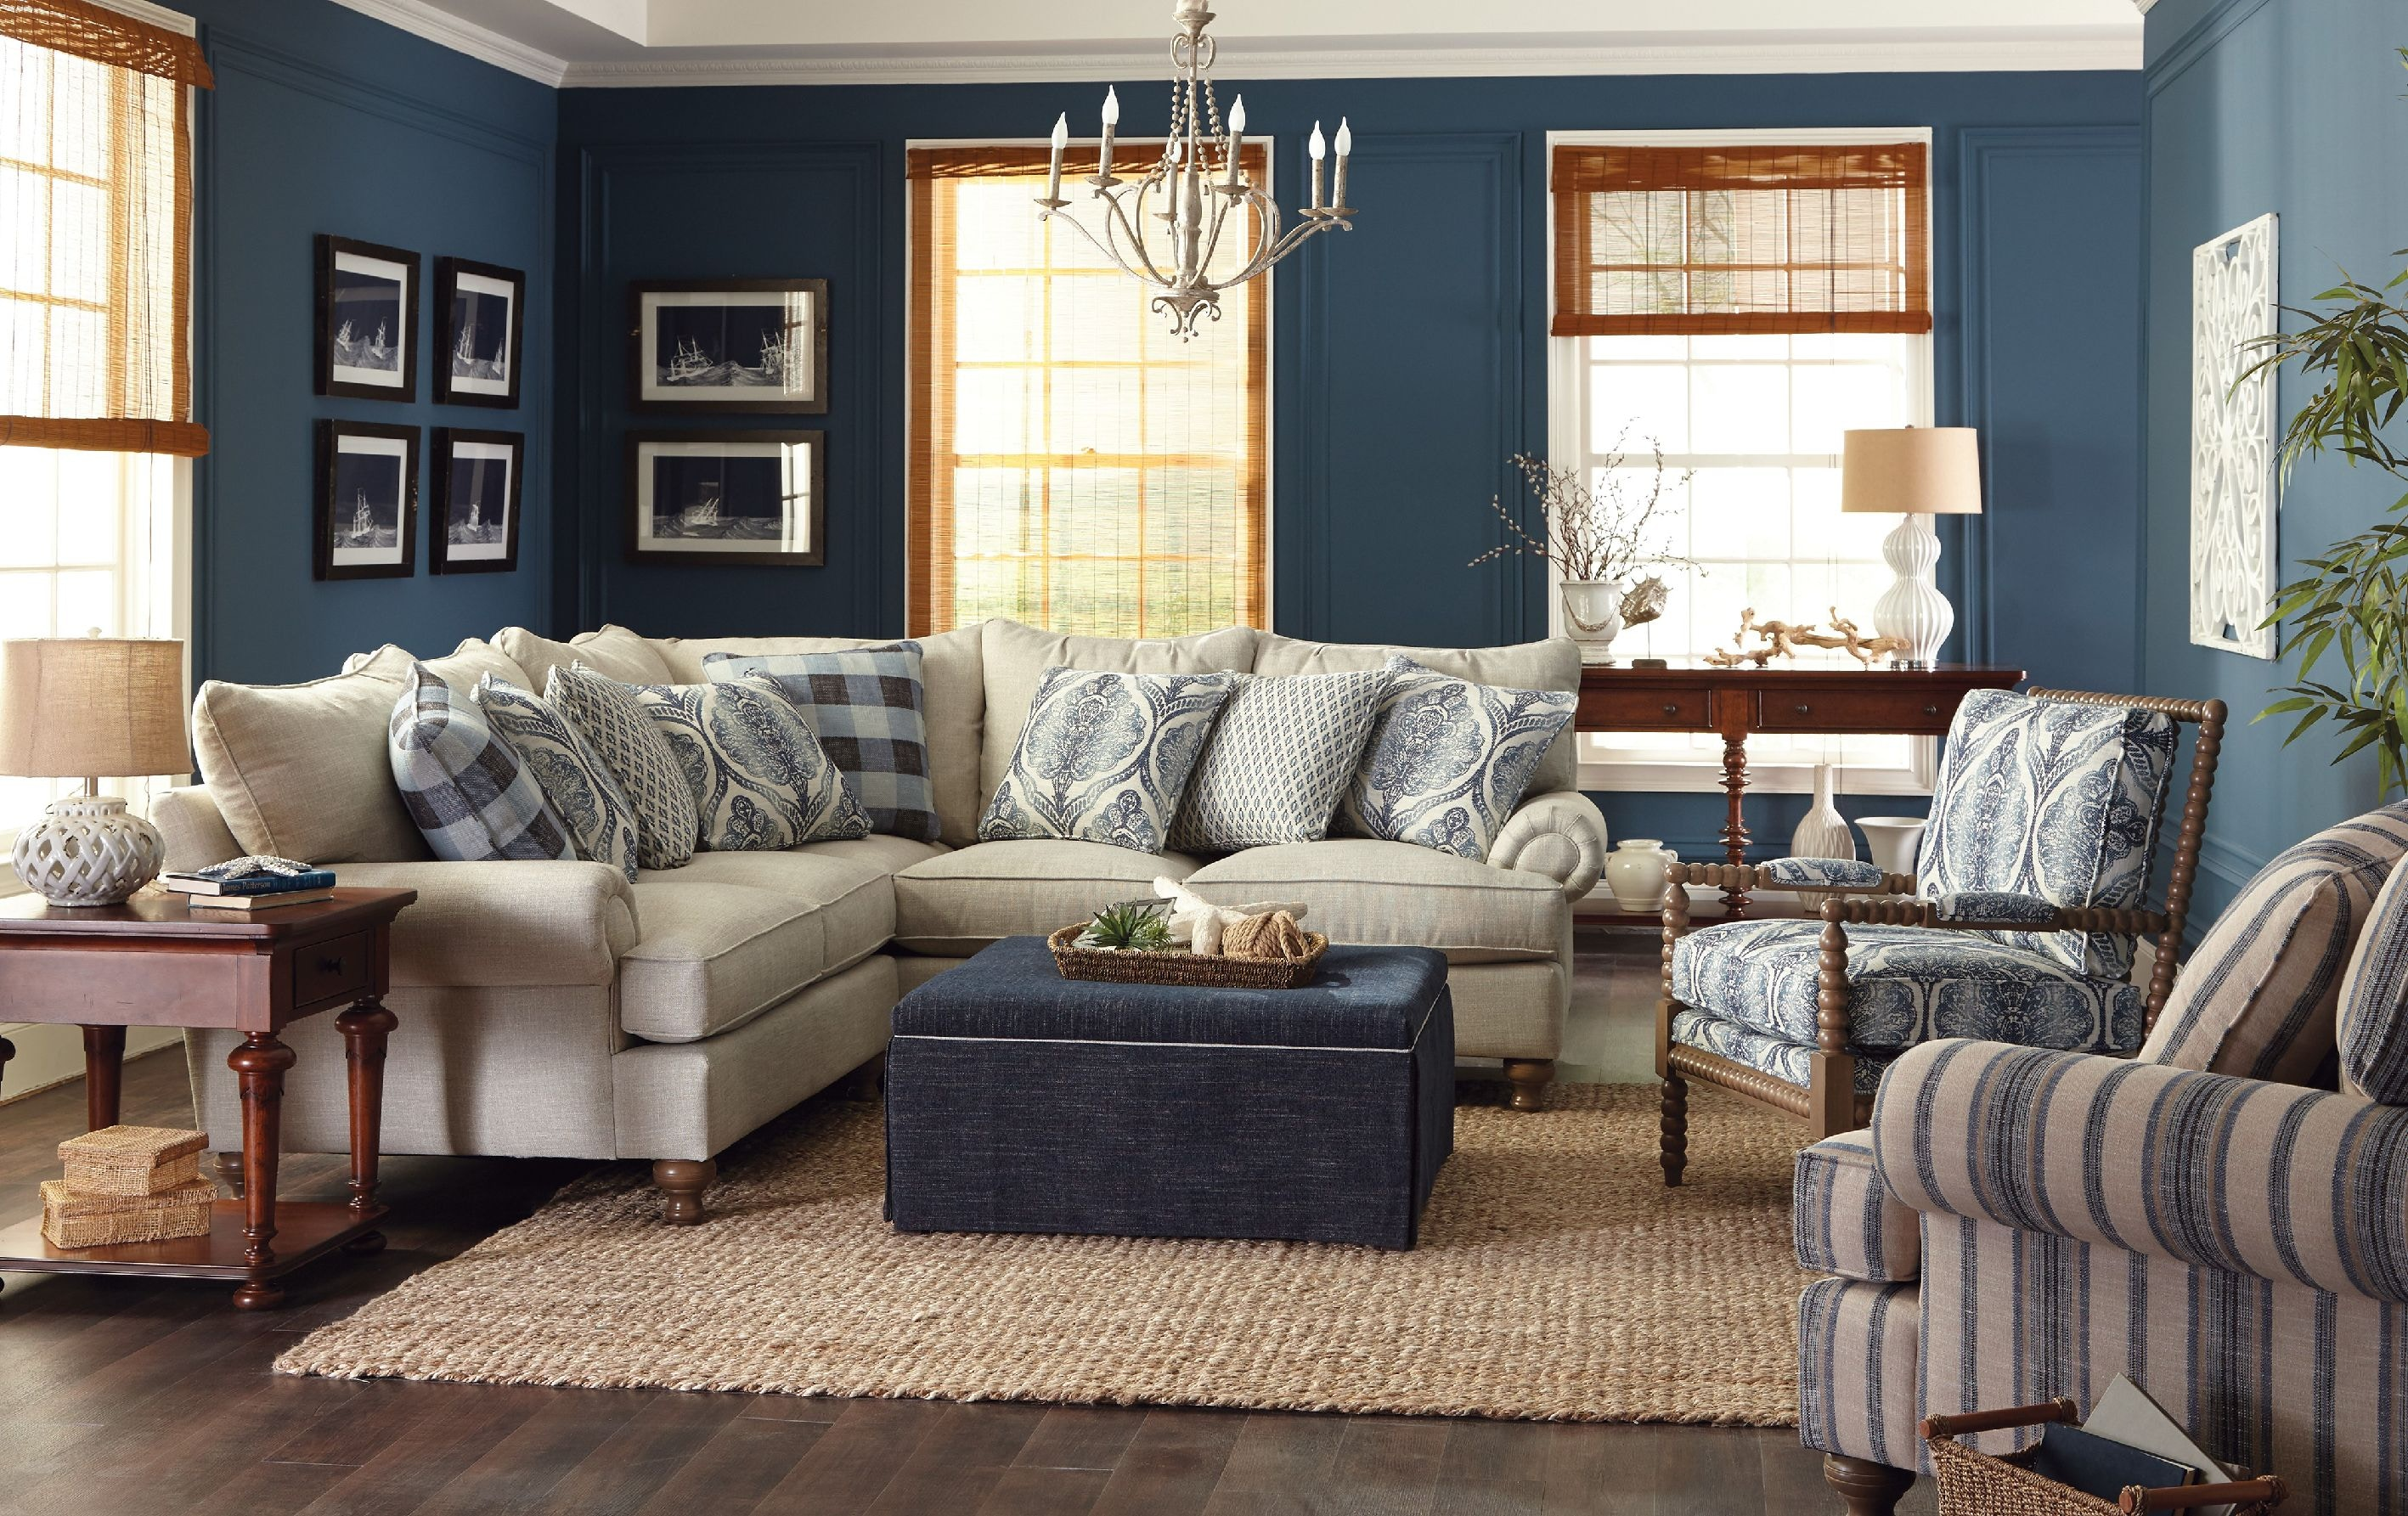 Paula Deen By Craftmaster Living Room Sectional P7117bd Sect Craftmaster Hiddenite Nc